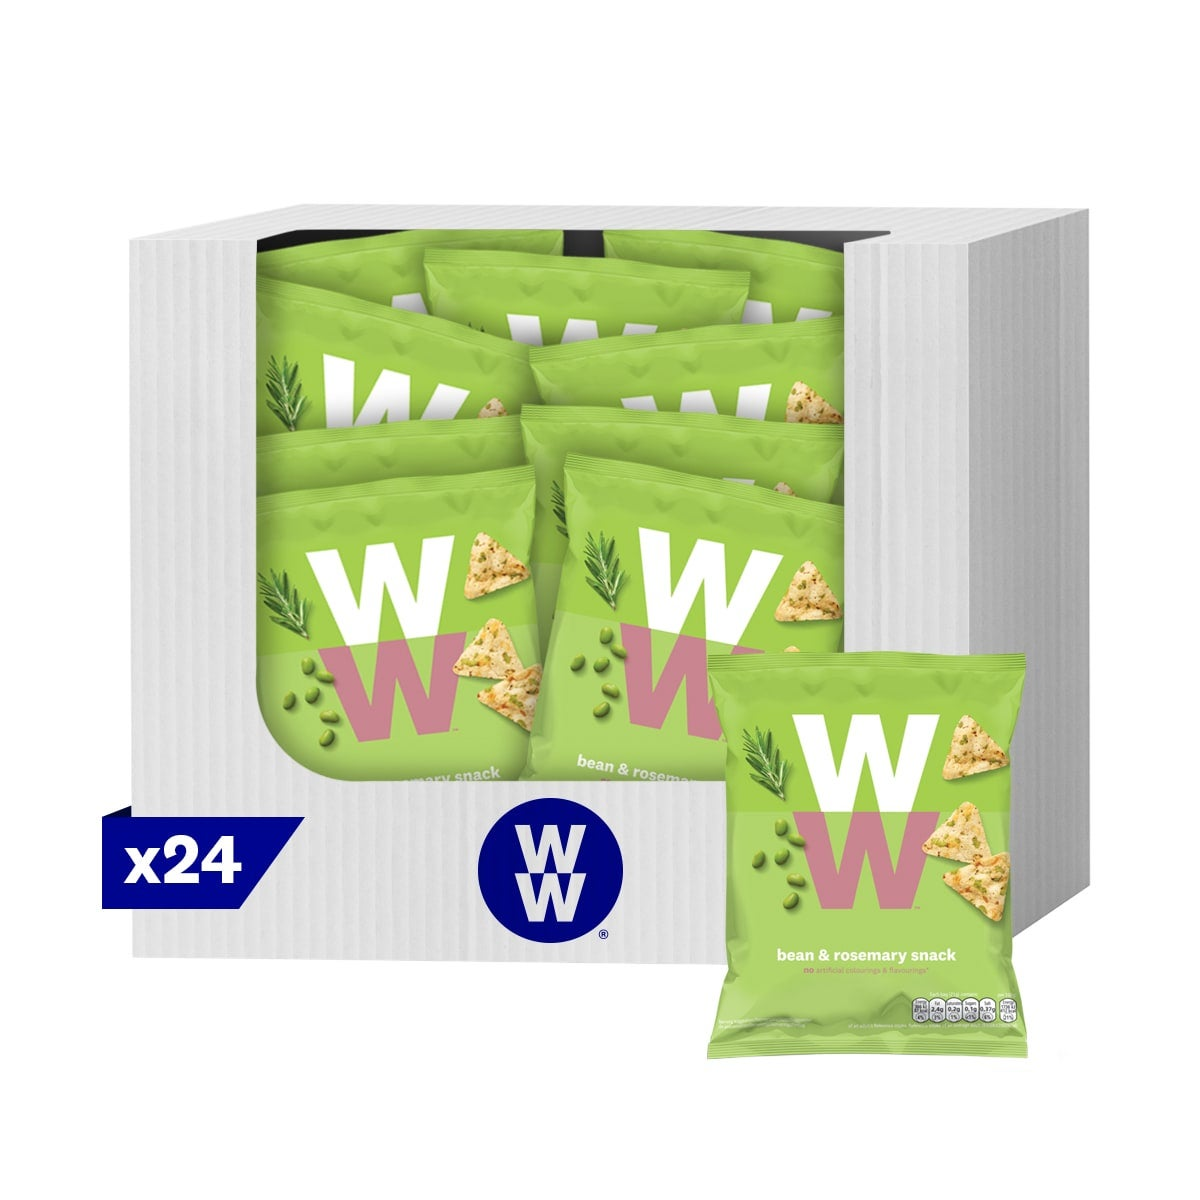 Box of 24, WW Rosemary Crisps, crunchy popped chickpea and bean snack with a rosemary flavour, 2 SmartPoints values per bag, suitable for vegetarians